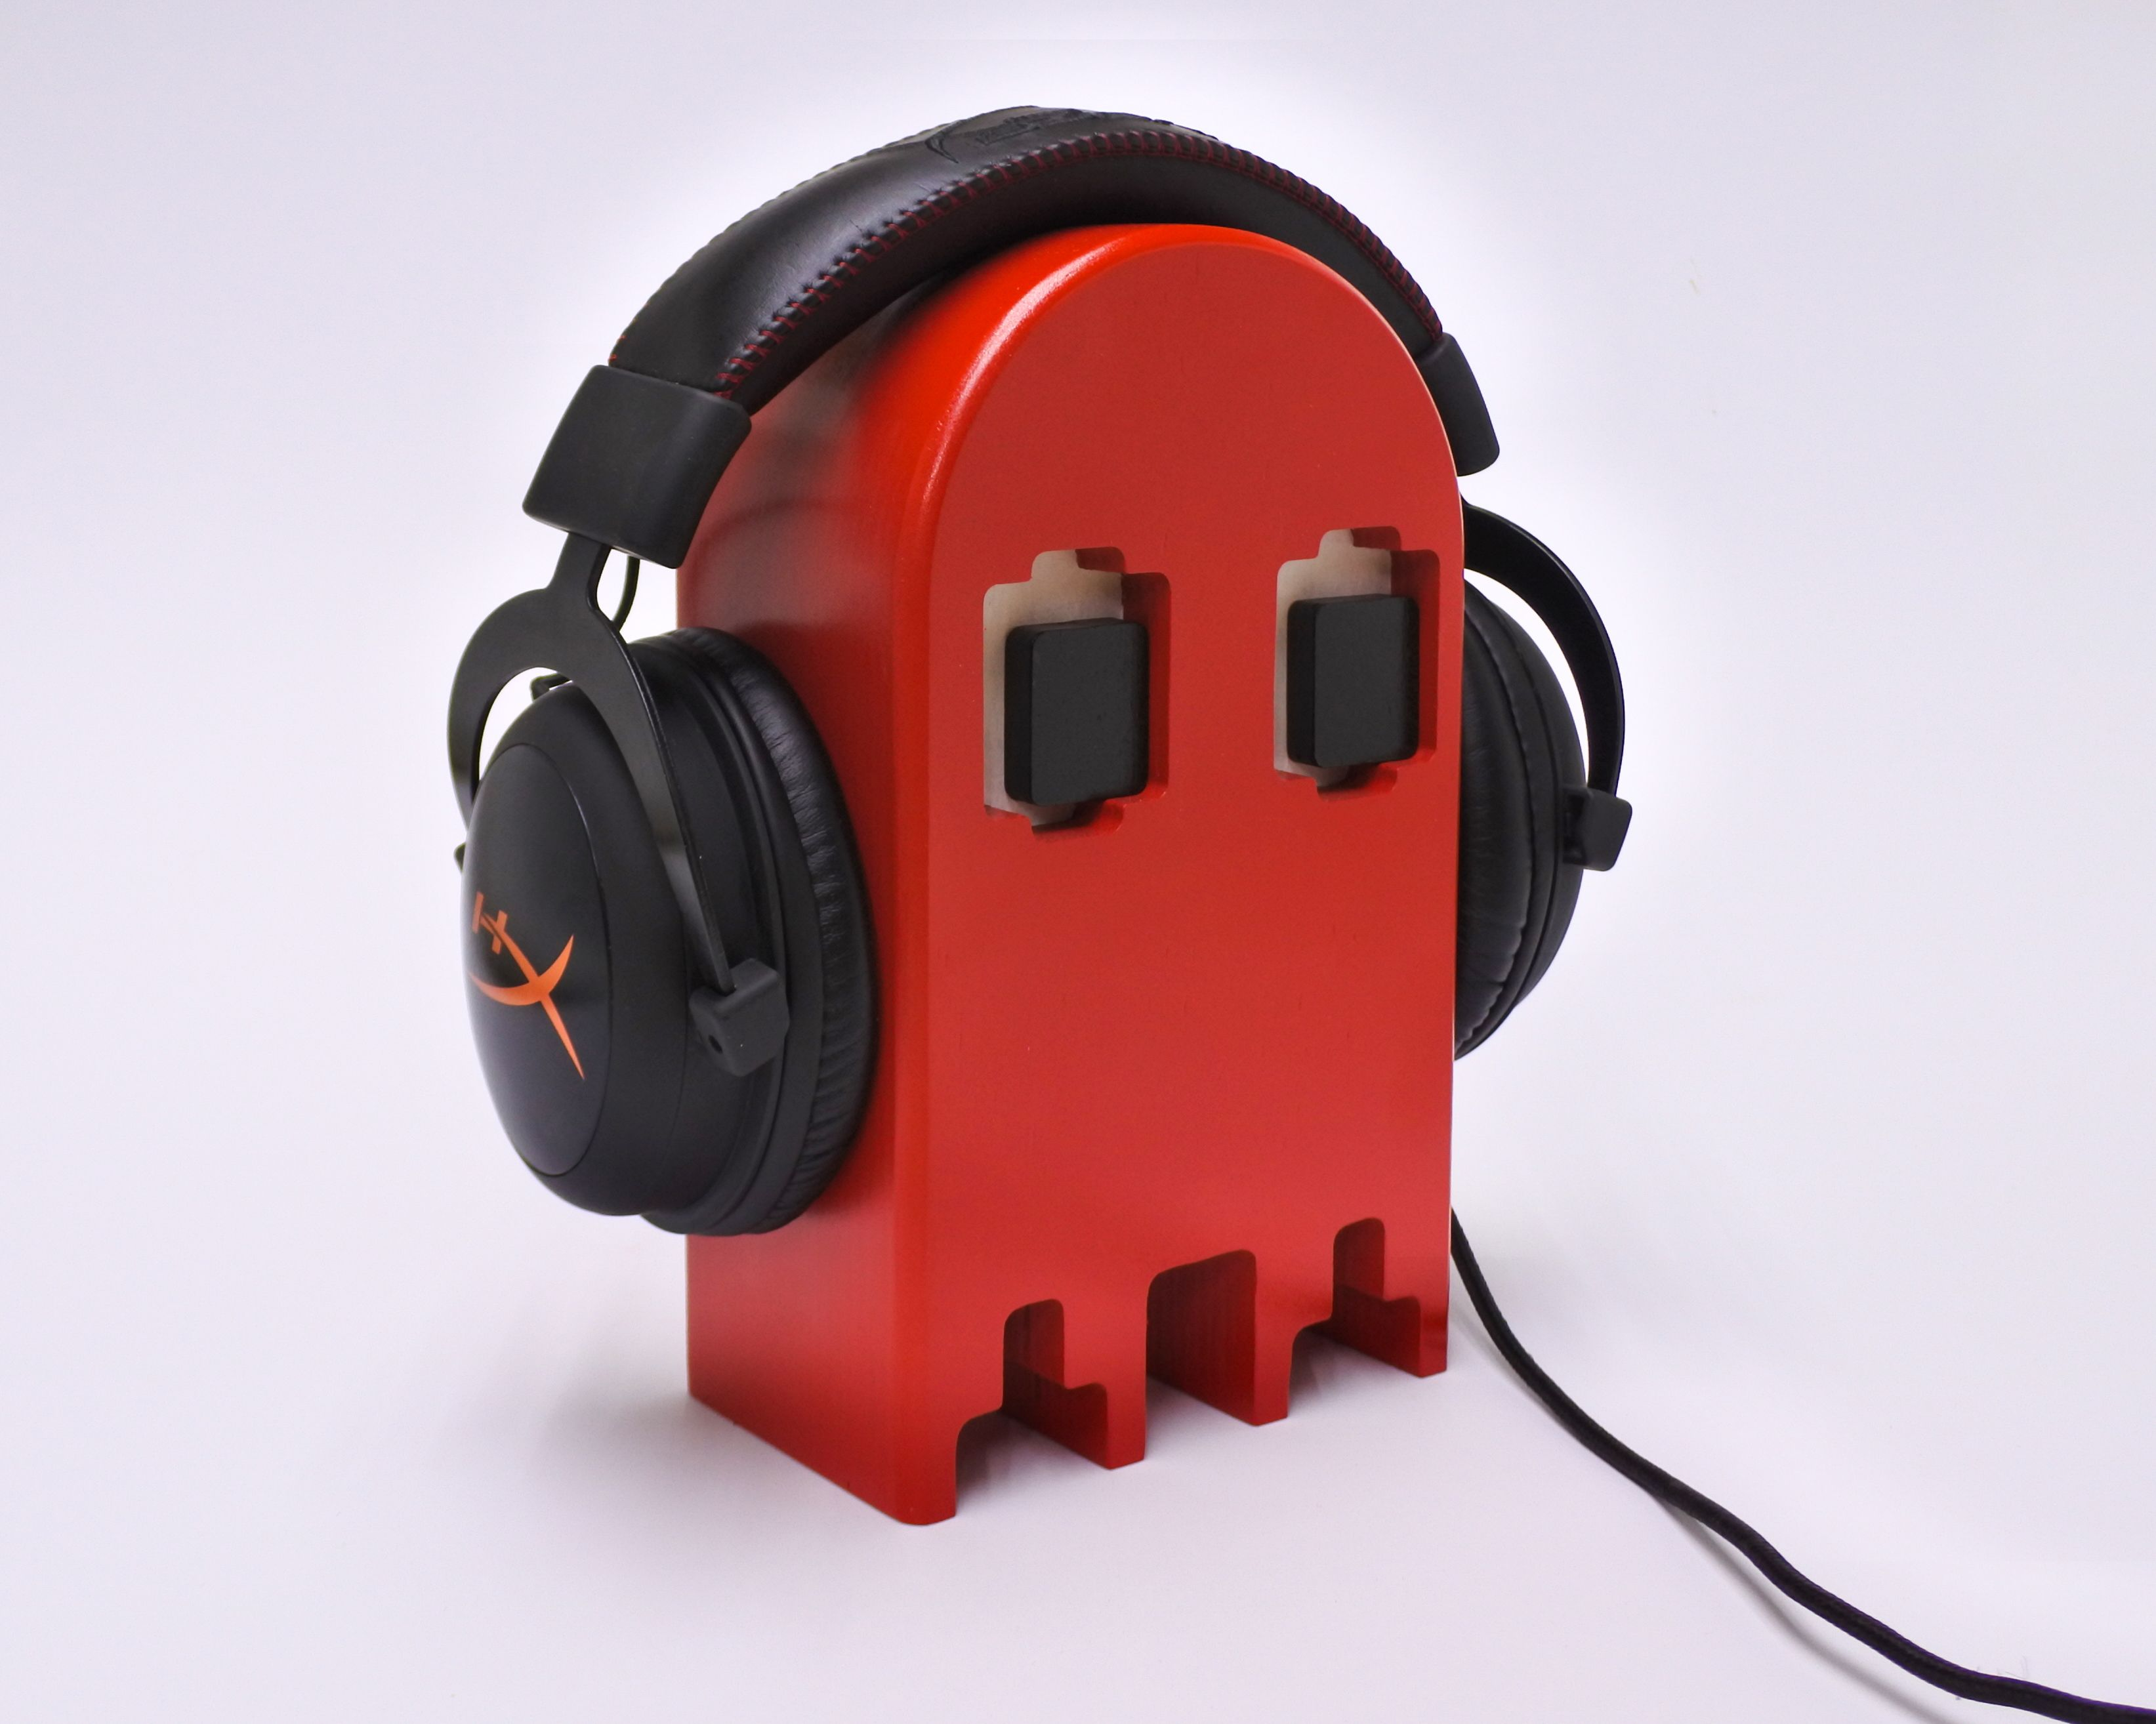 Headphone Stand Wooden Retro Game Ghost Gamer Gift Etsy Headphone Stands Gamer Gifts Gamer Room